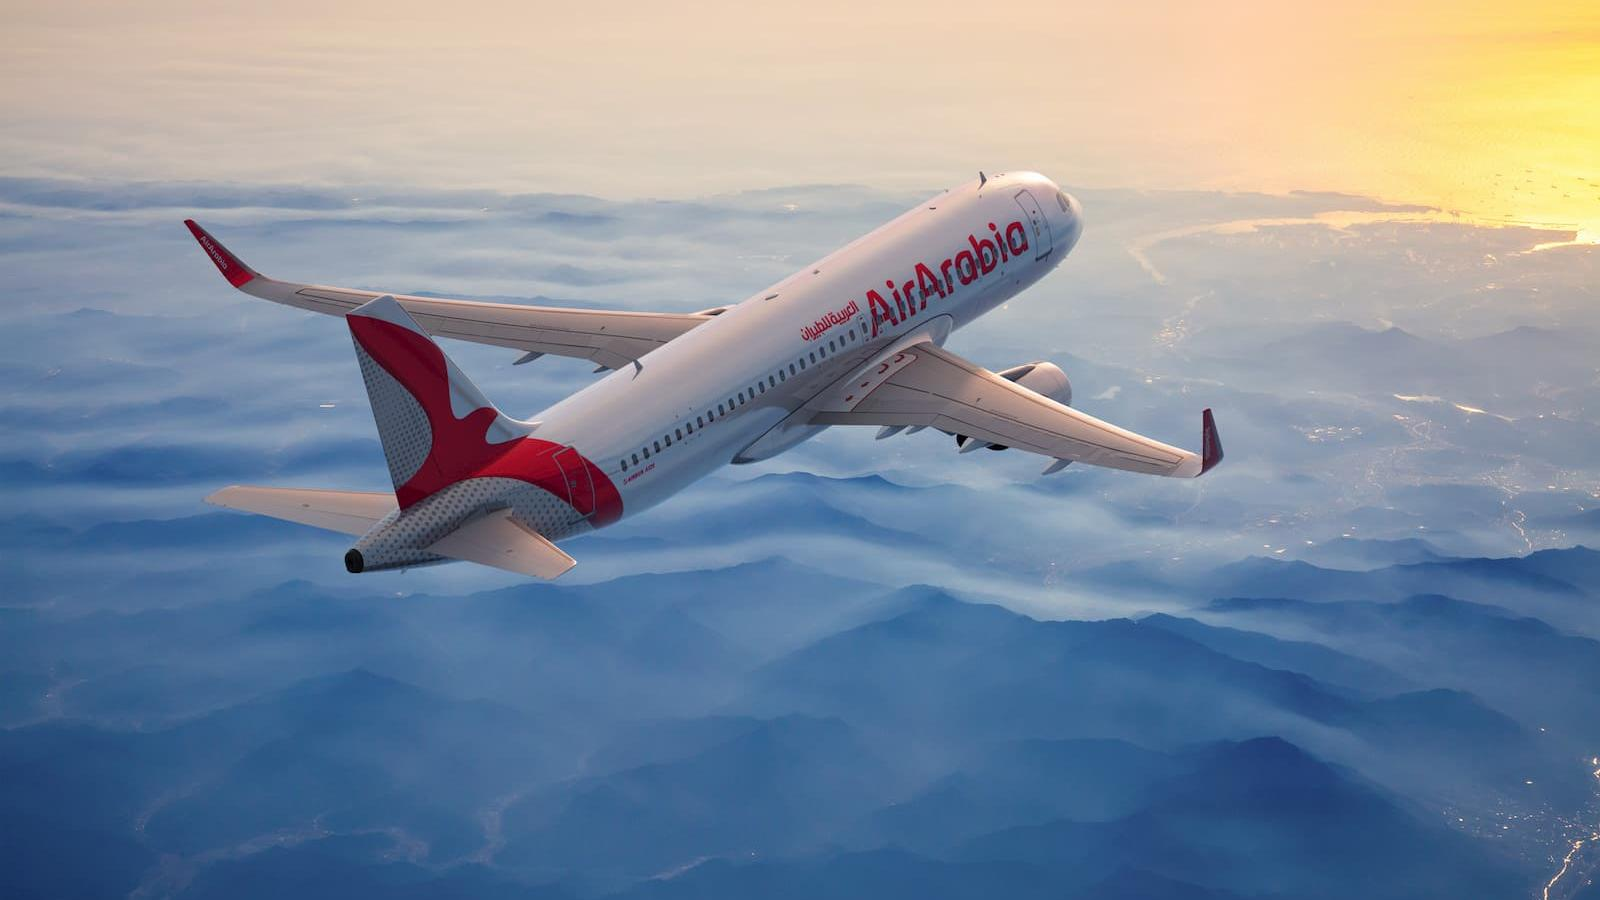 Air Arabia to resume direct flights to Qatar from January 18